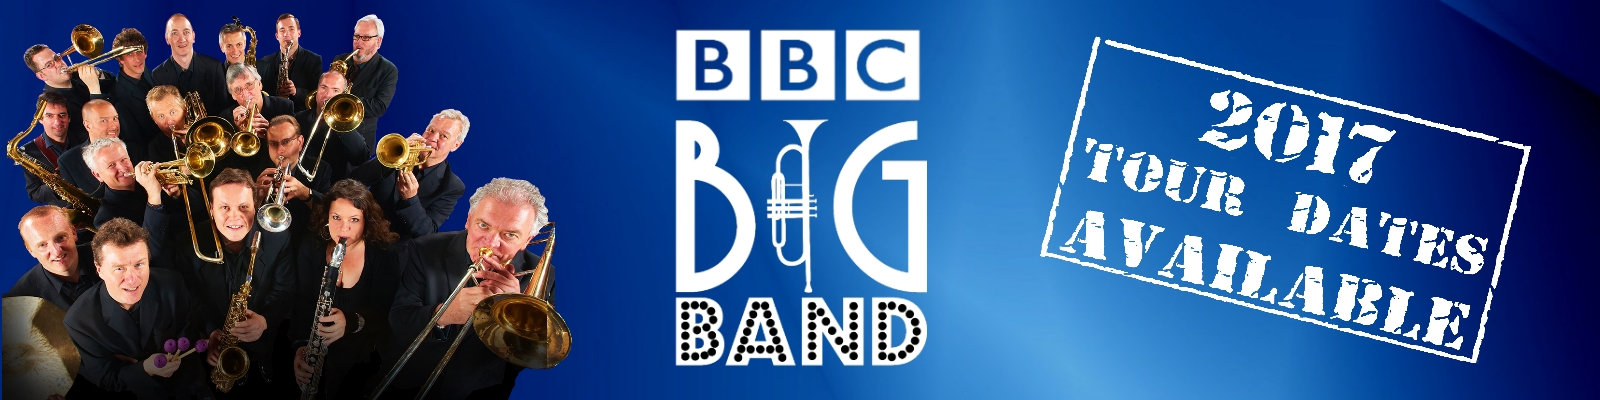 The BBC Big Band - Email Image